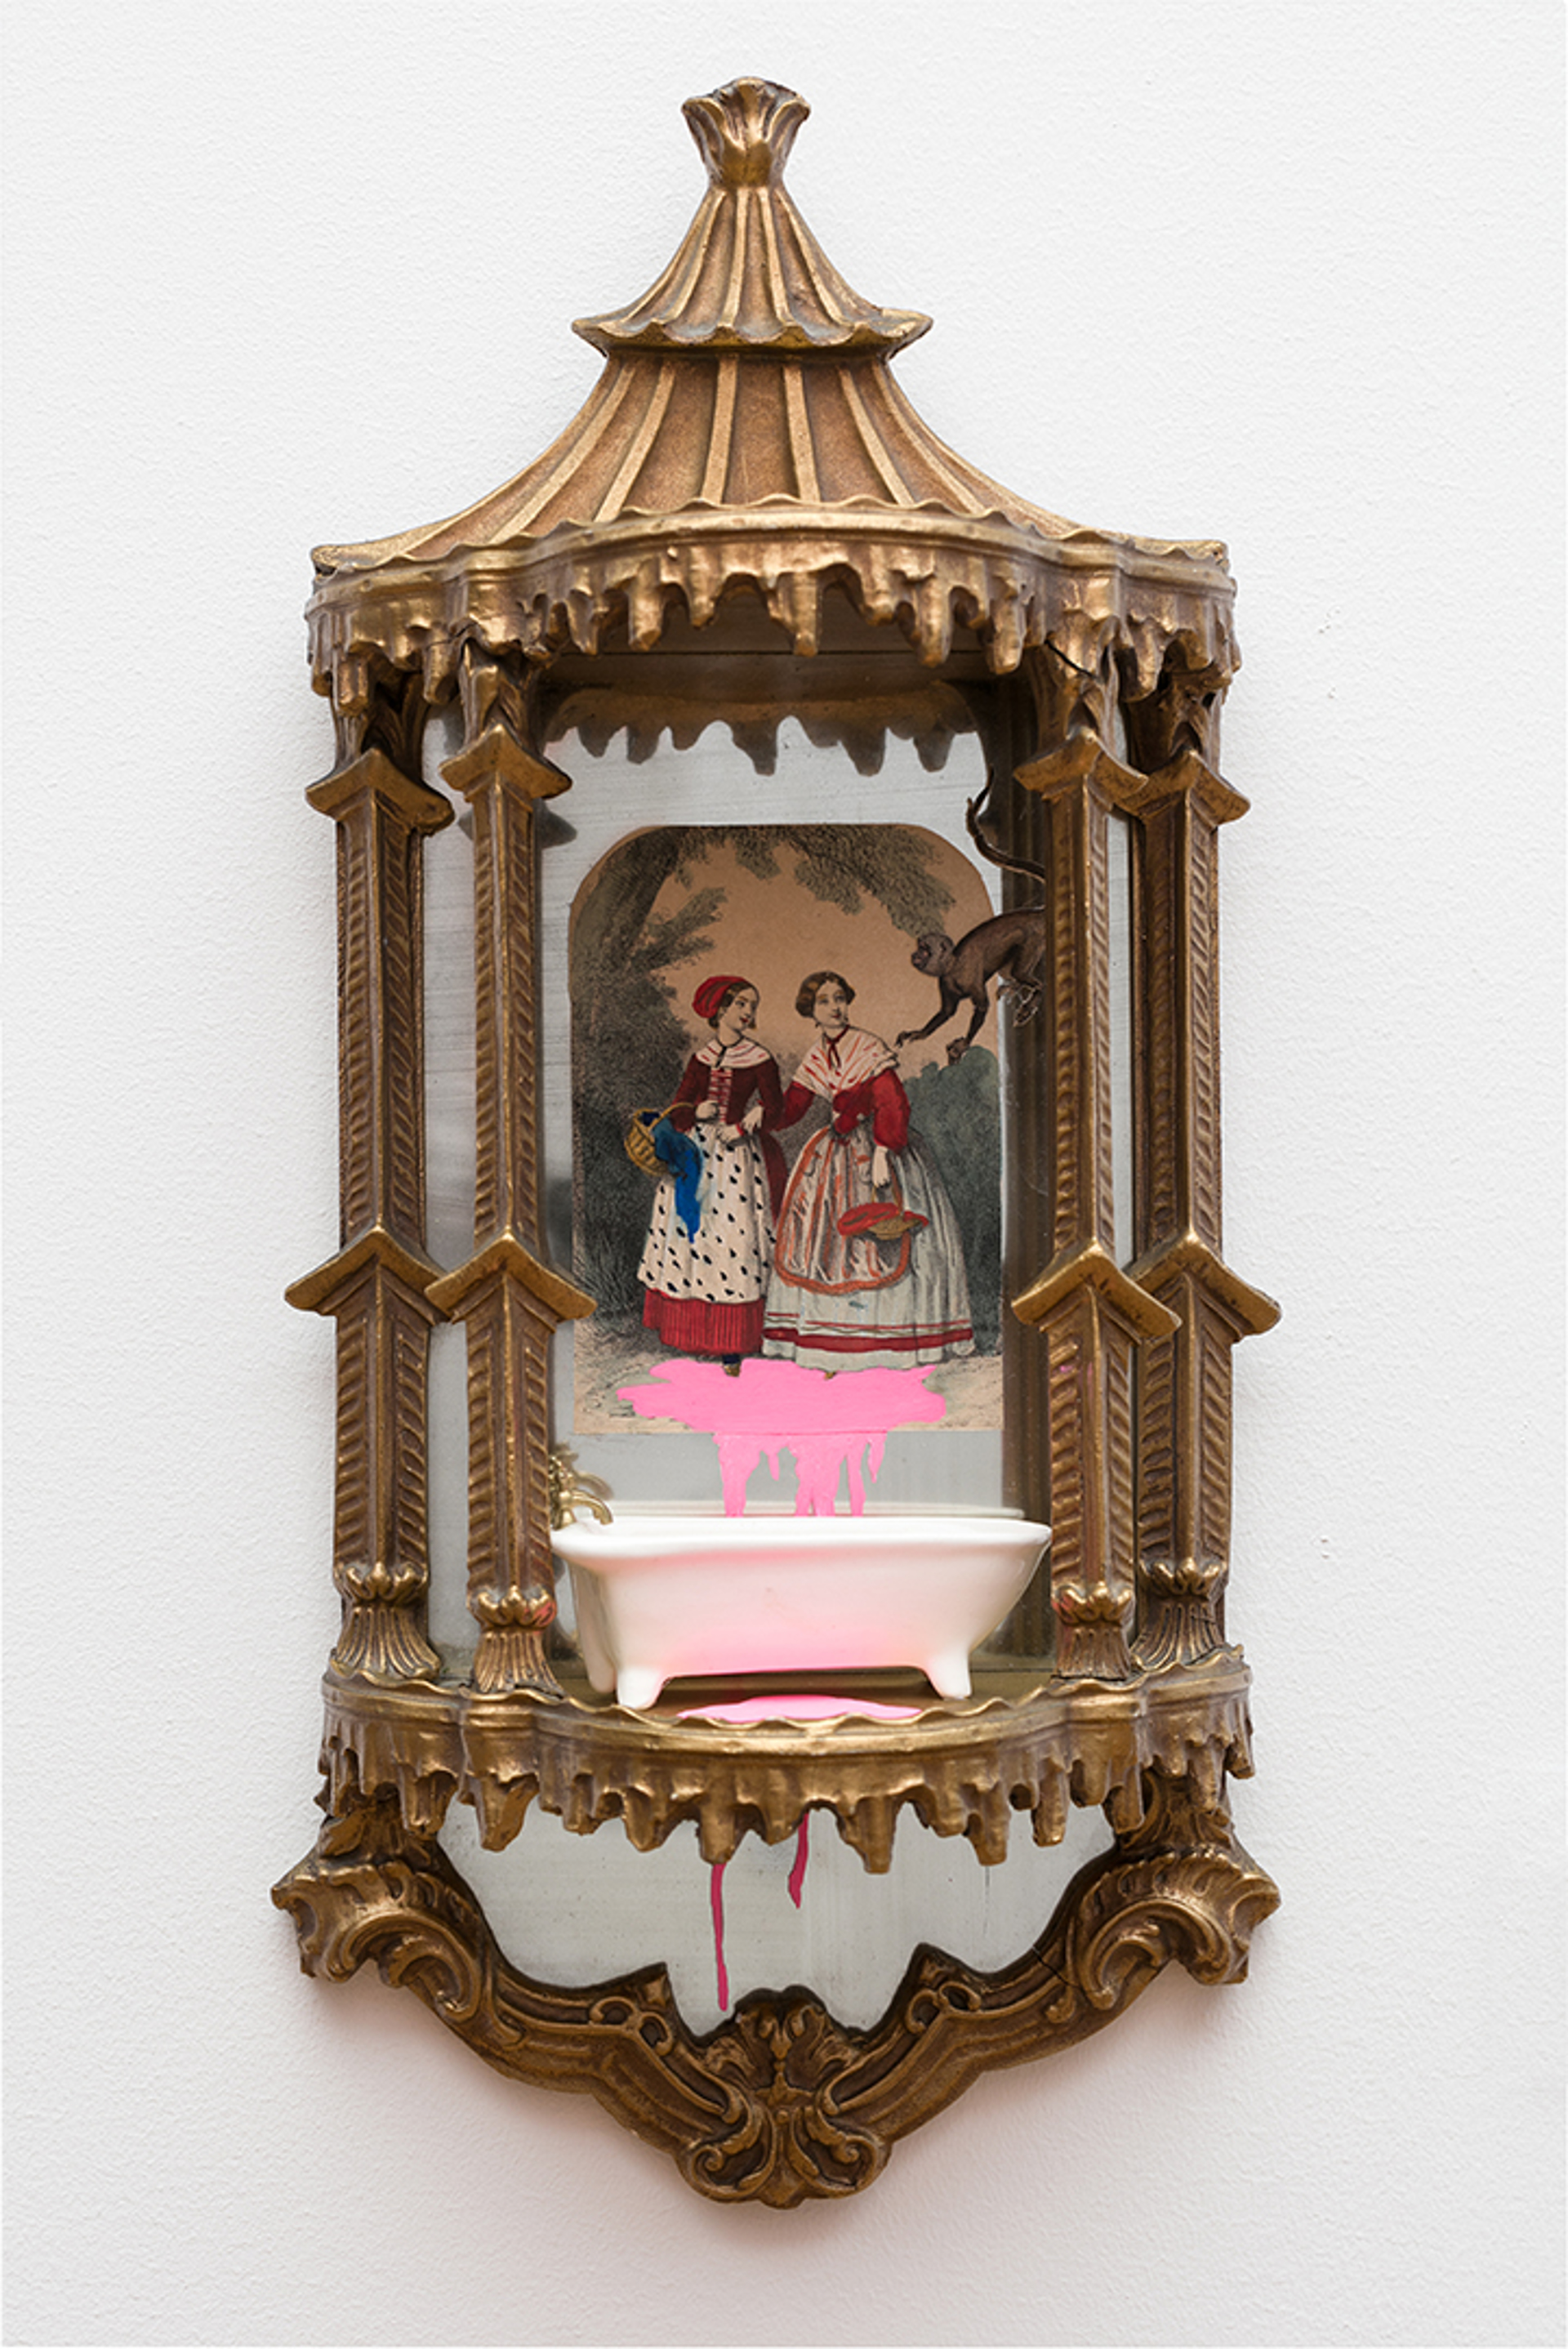 A Reliquary for Unfathomable Fear by Suchitra Mattai